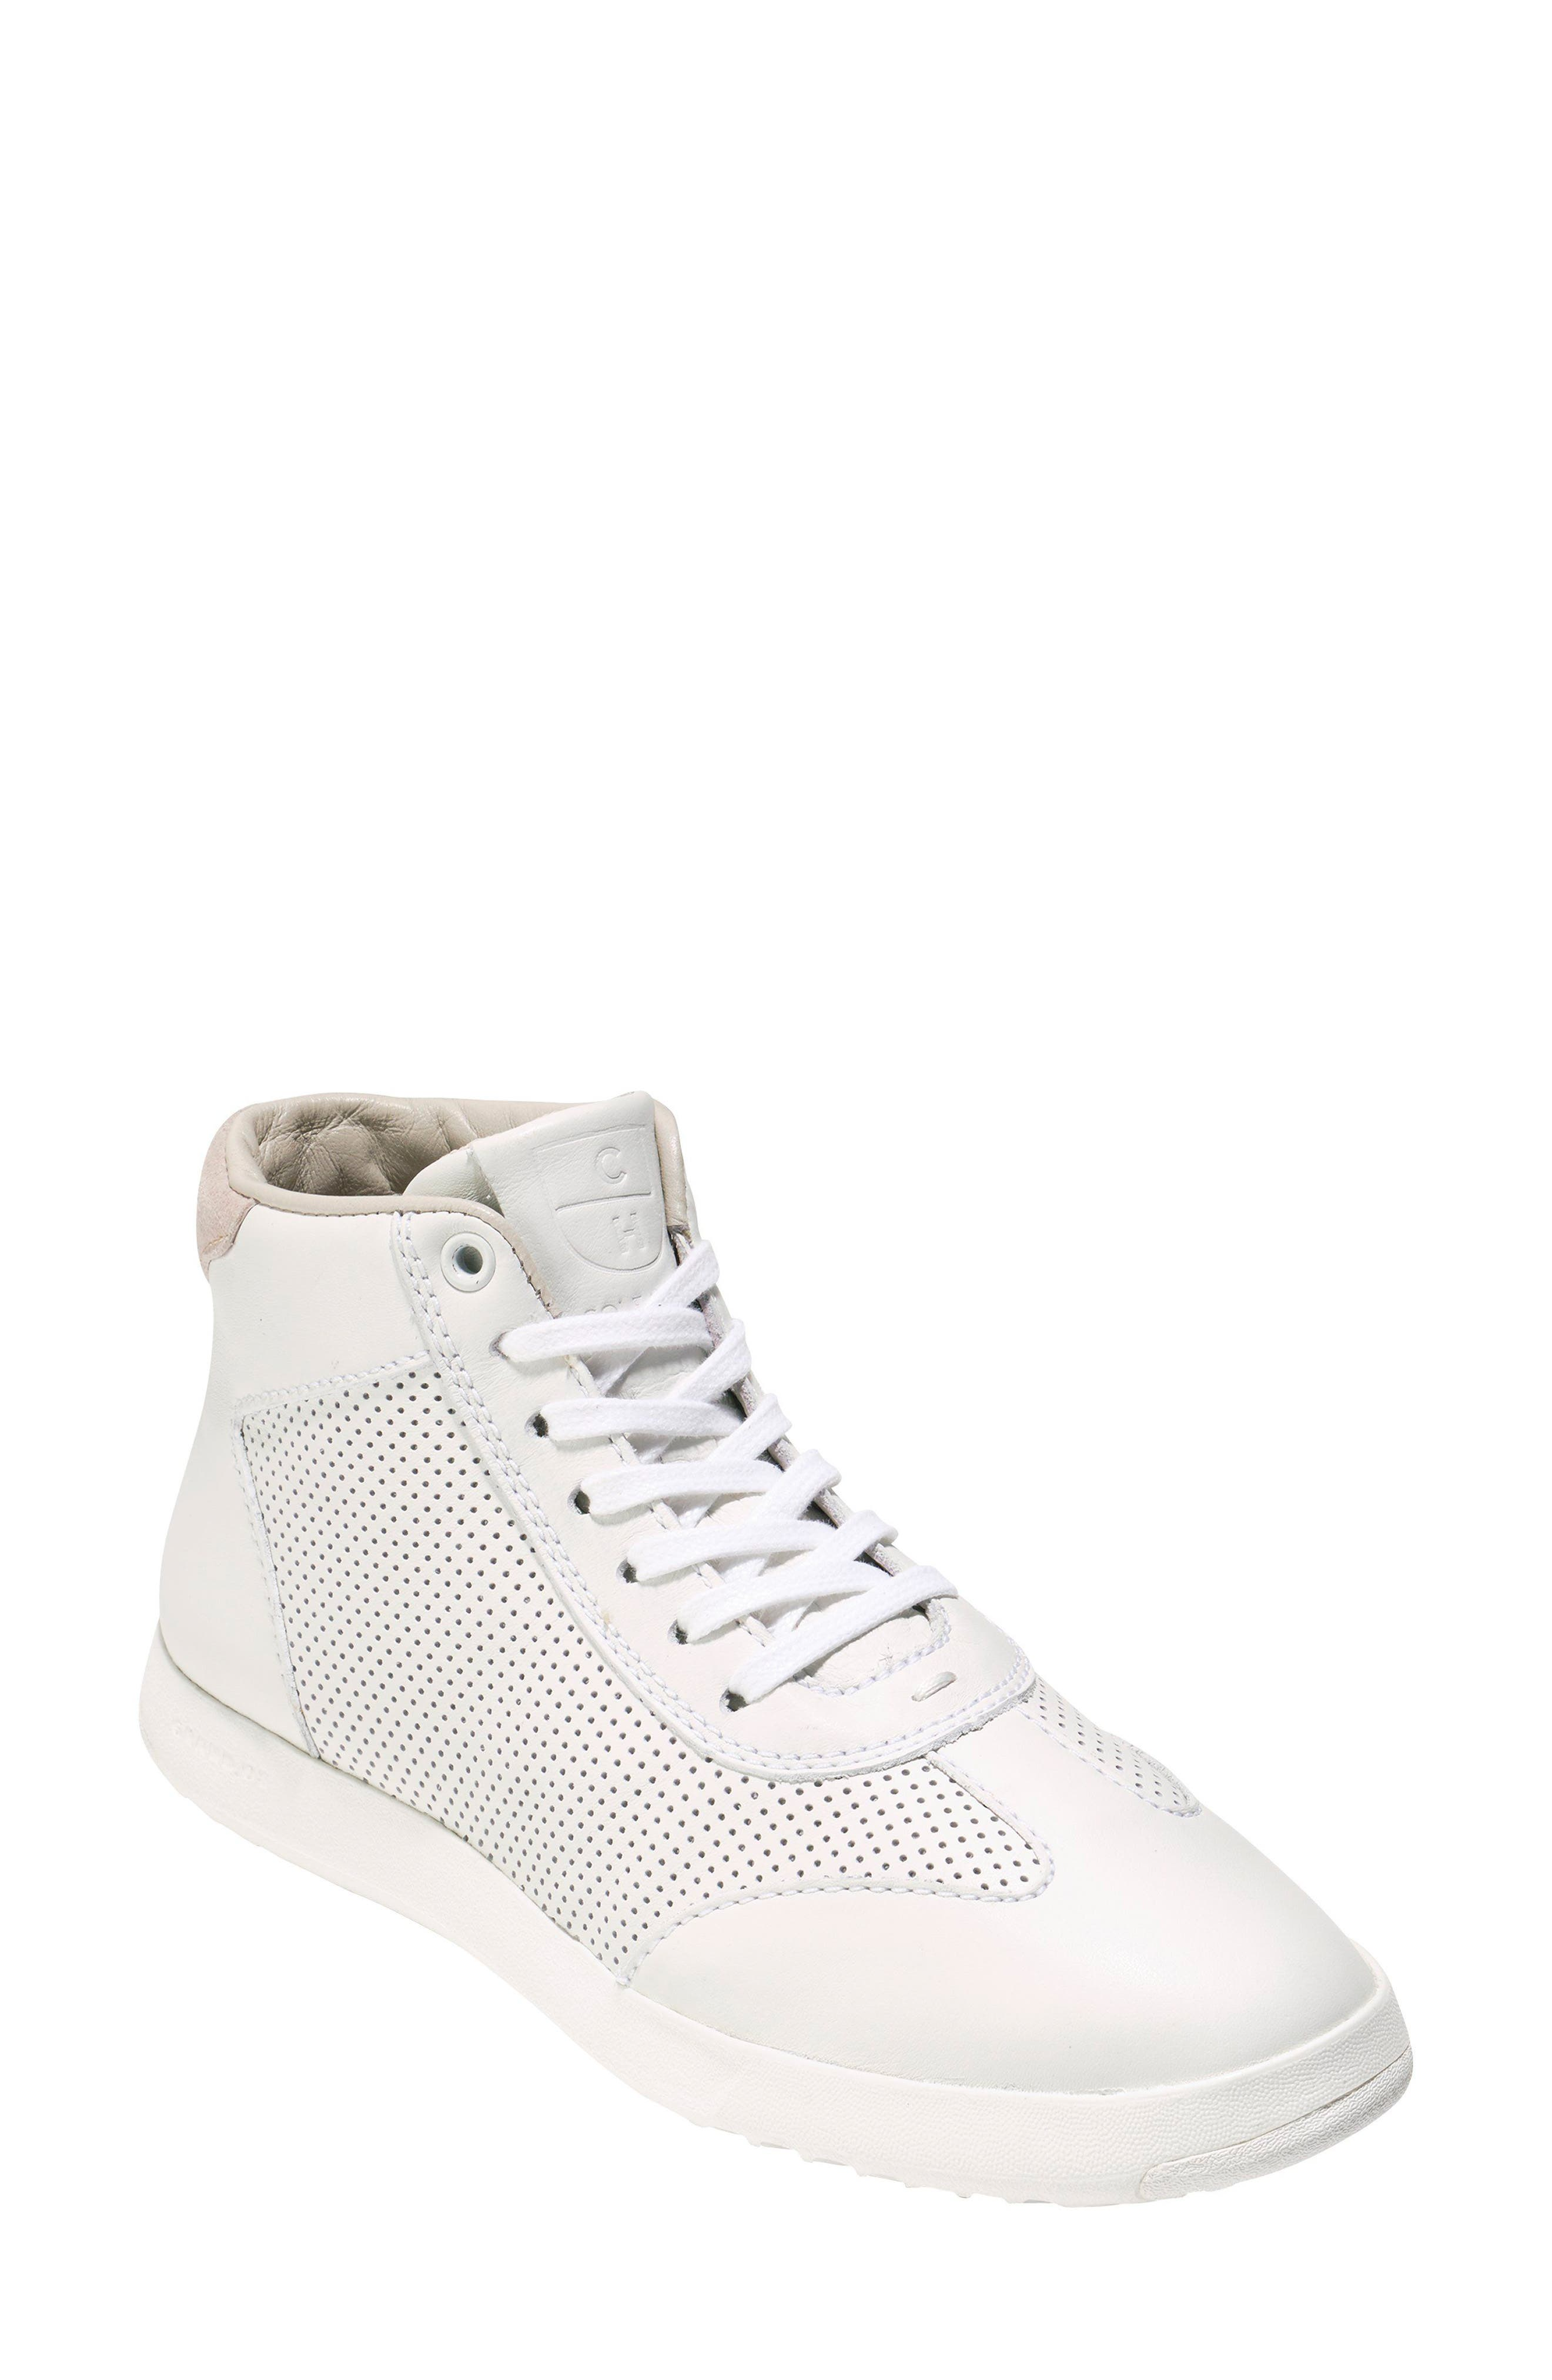 Alternate Image 1 Selected - Cole Haan Grandpro High Top Sneaker (Women)